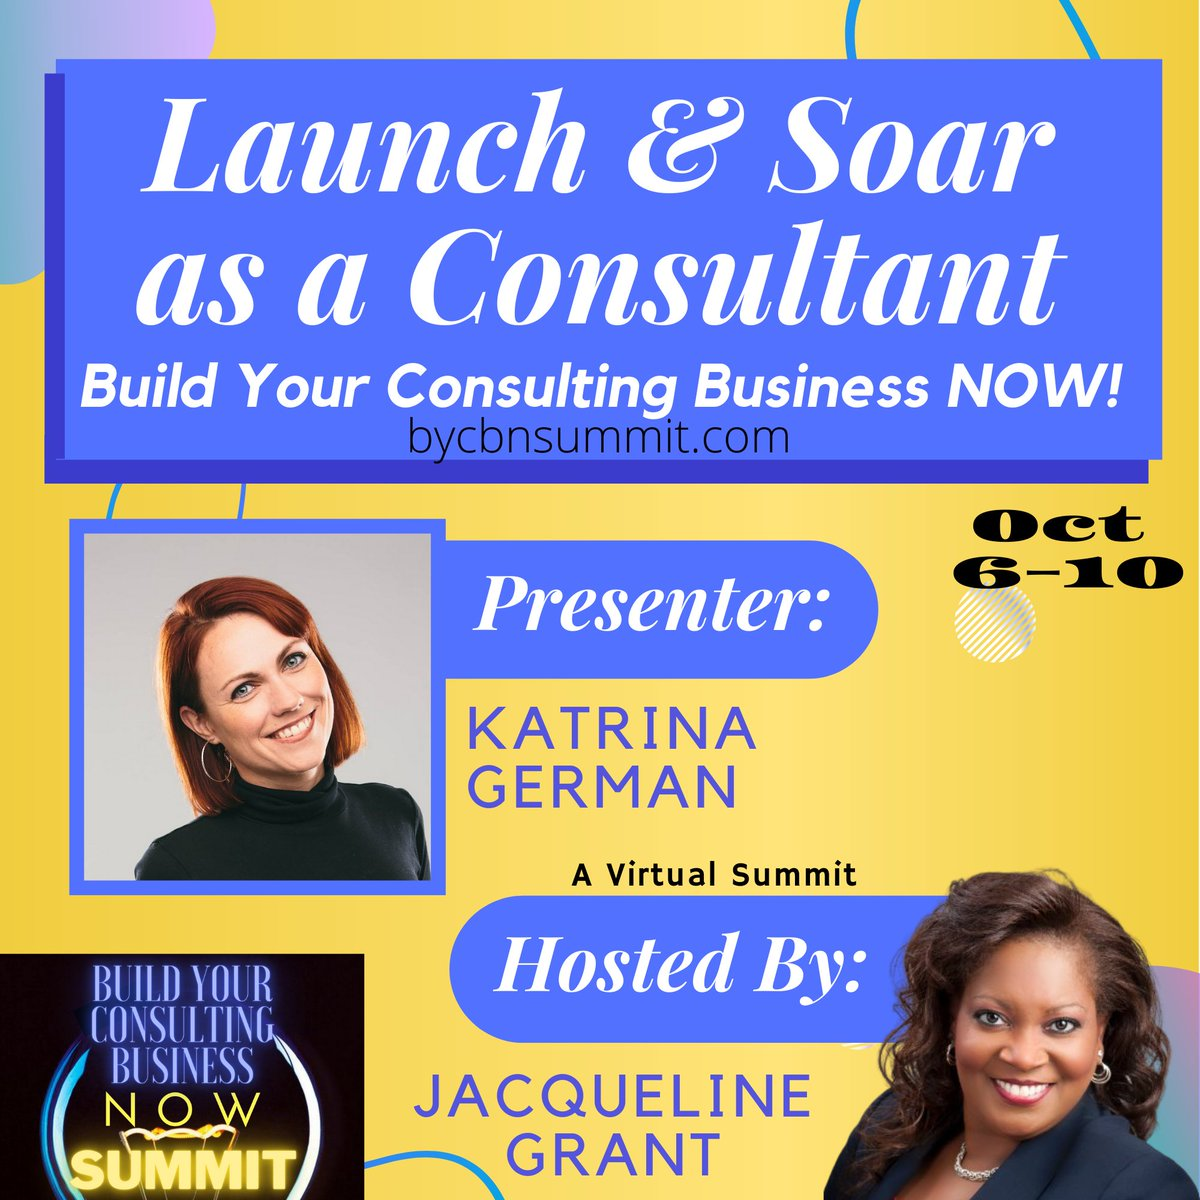 I wanted to make sure you saw this game-changing event, the Build Your Consulting Business NOW! ONLINE web-summit! I am so excited that I was asked to be one of the expert presenters. https://t.co/J0b621Ap82 #womeninbiz #buildit https://t.co/WZ6tsjahXH